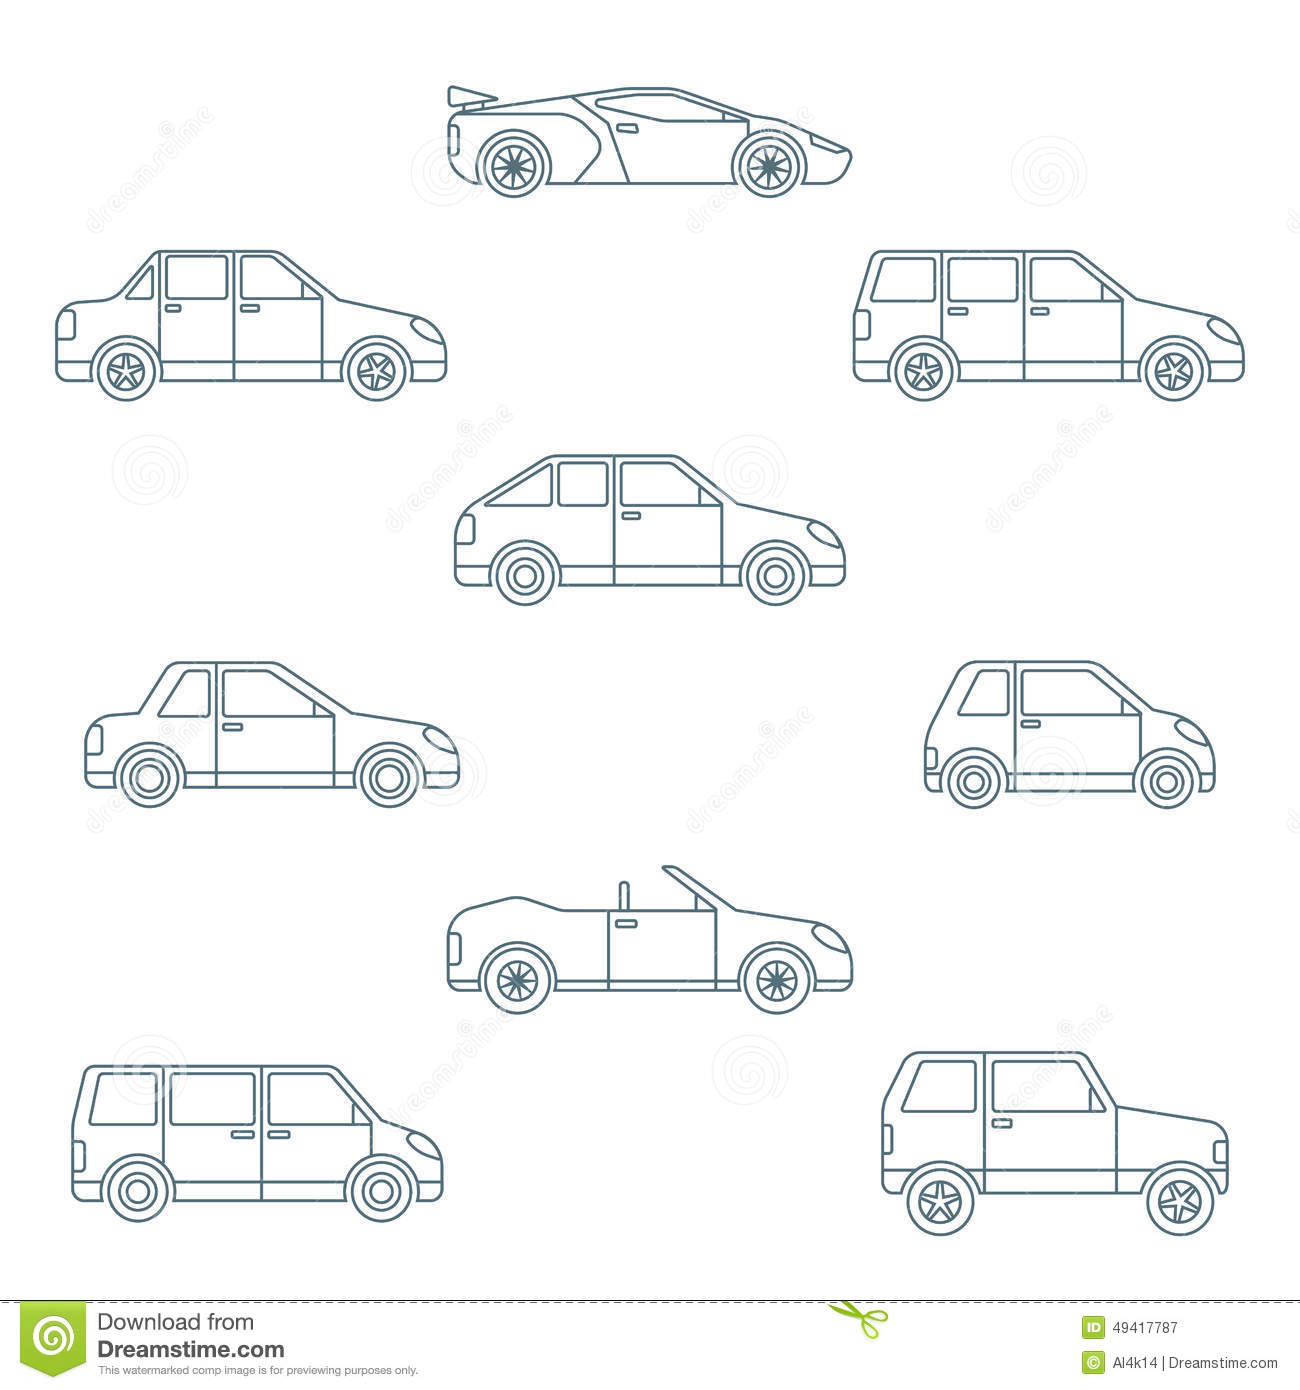 classification essay types of cars